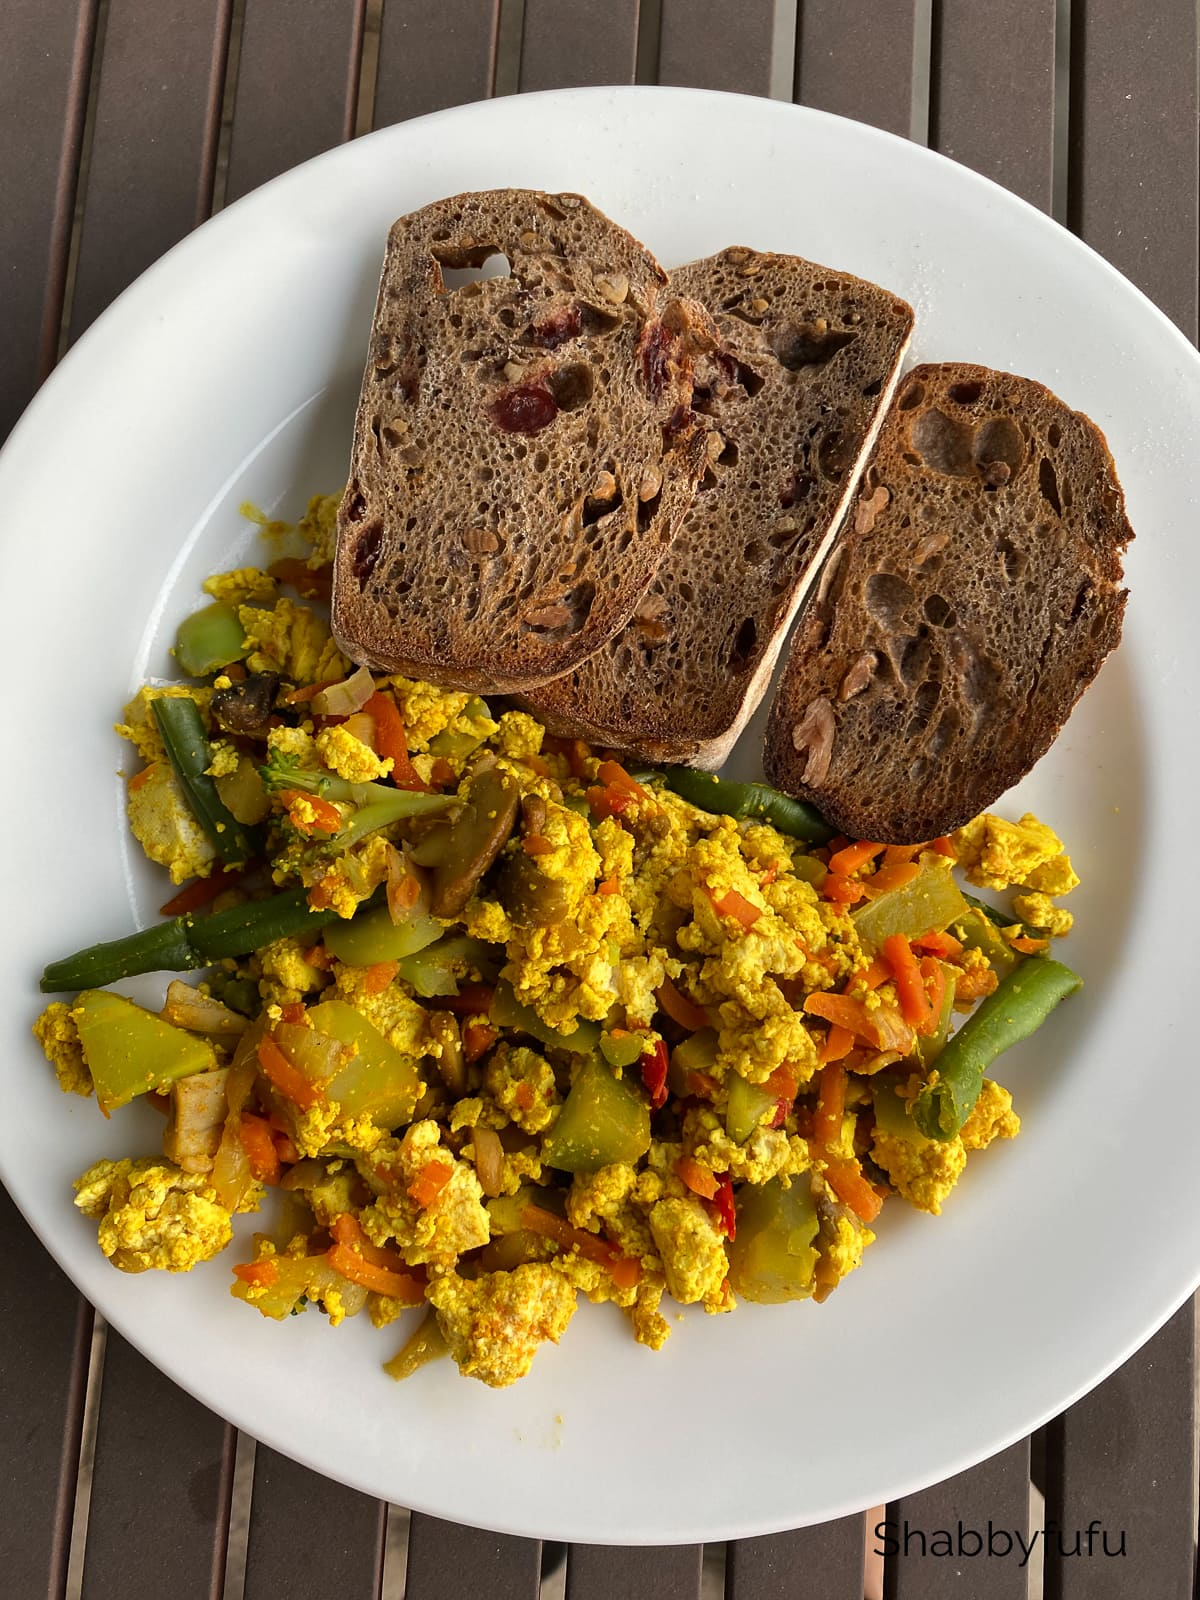 how I lost 25 pounds on a vegan diet tofu scramble